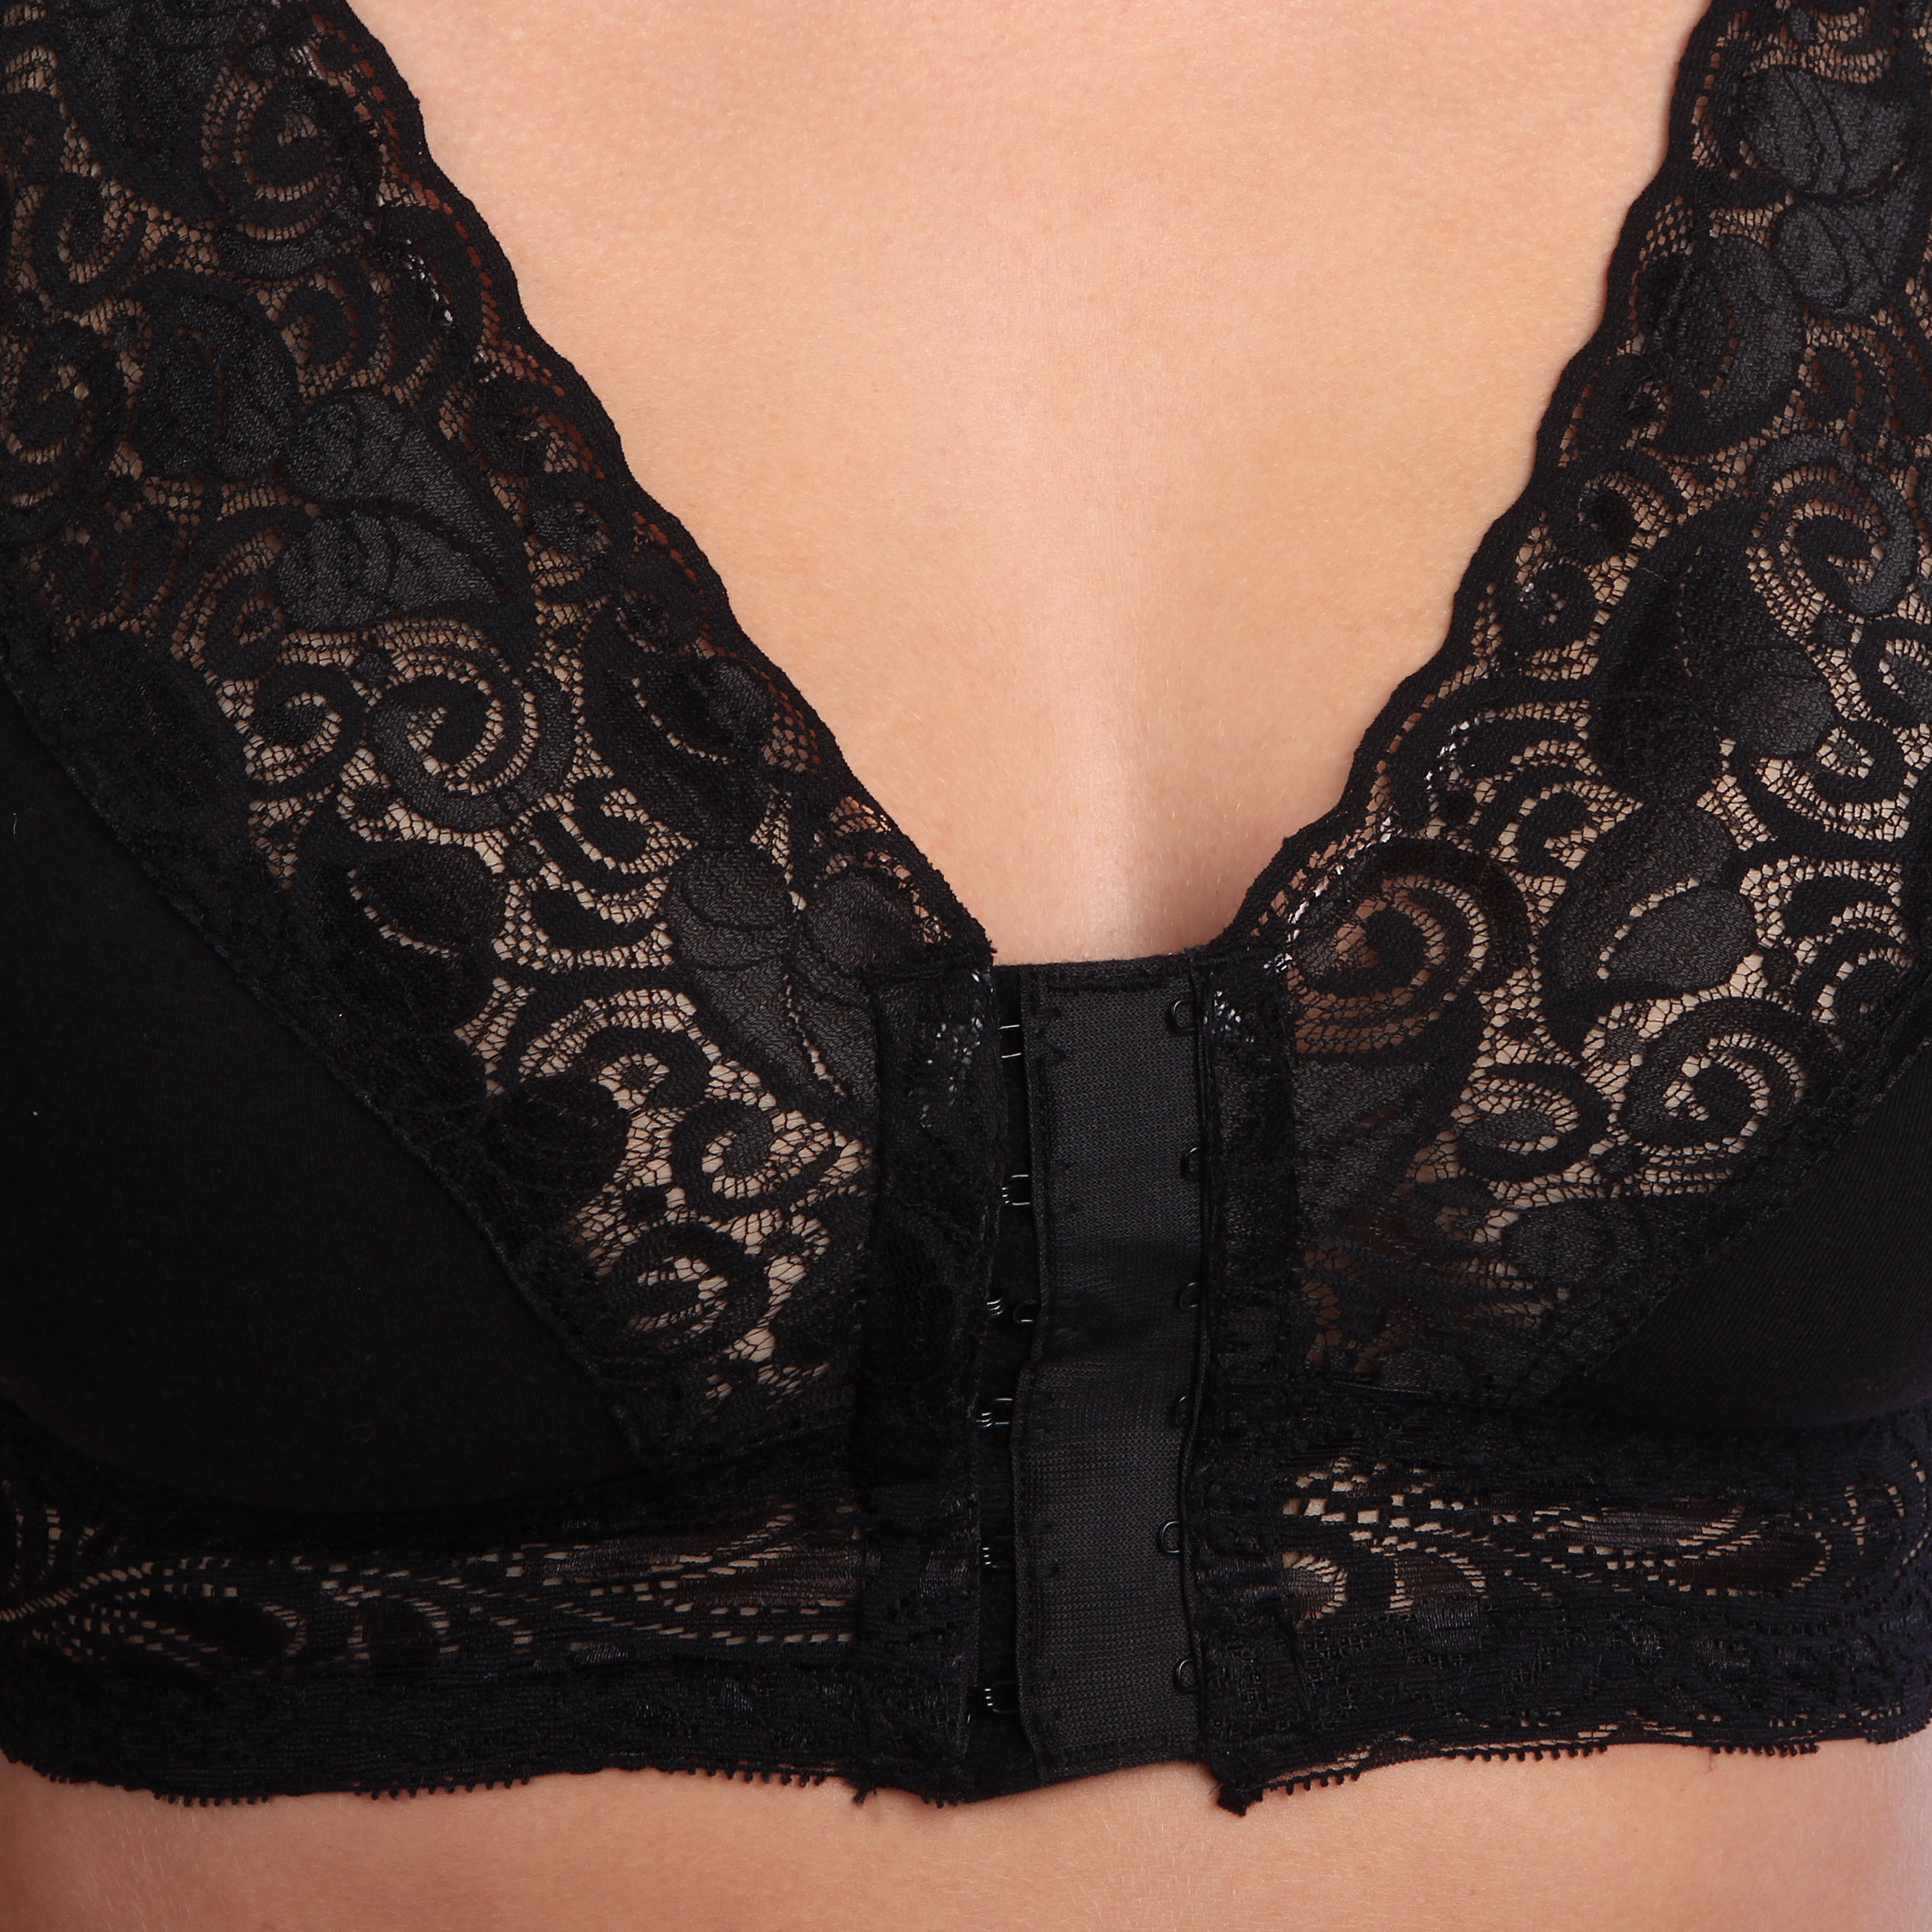 30d0b2cde Shop Valmont Lacy Leisure Full Coverage Bra Front Close - Ships To Canada -  Overstock - 8199096